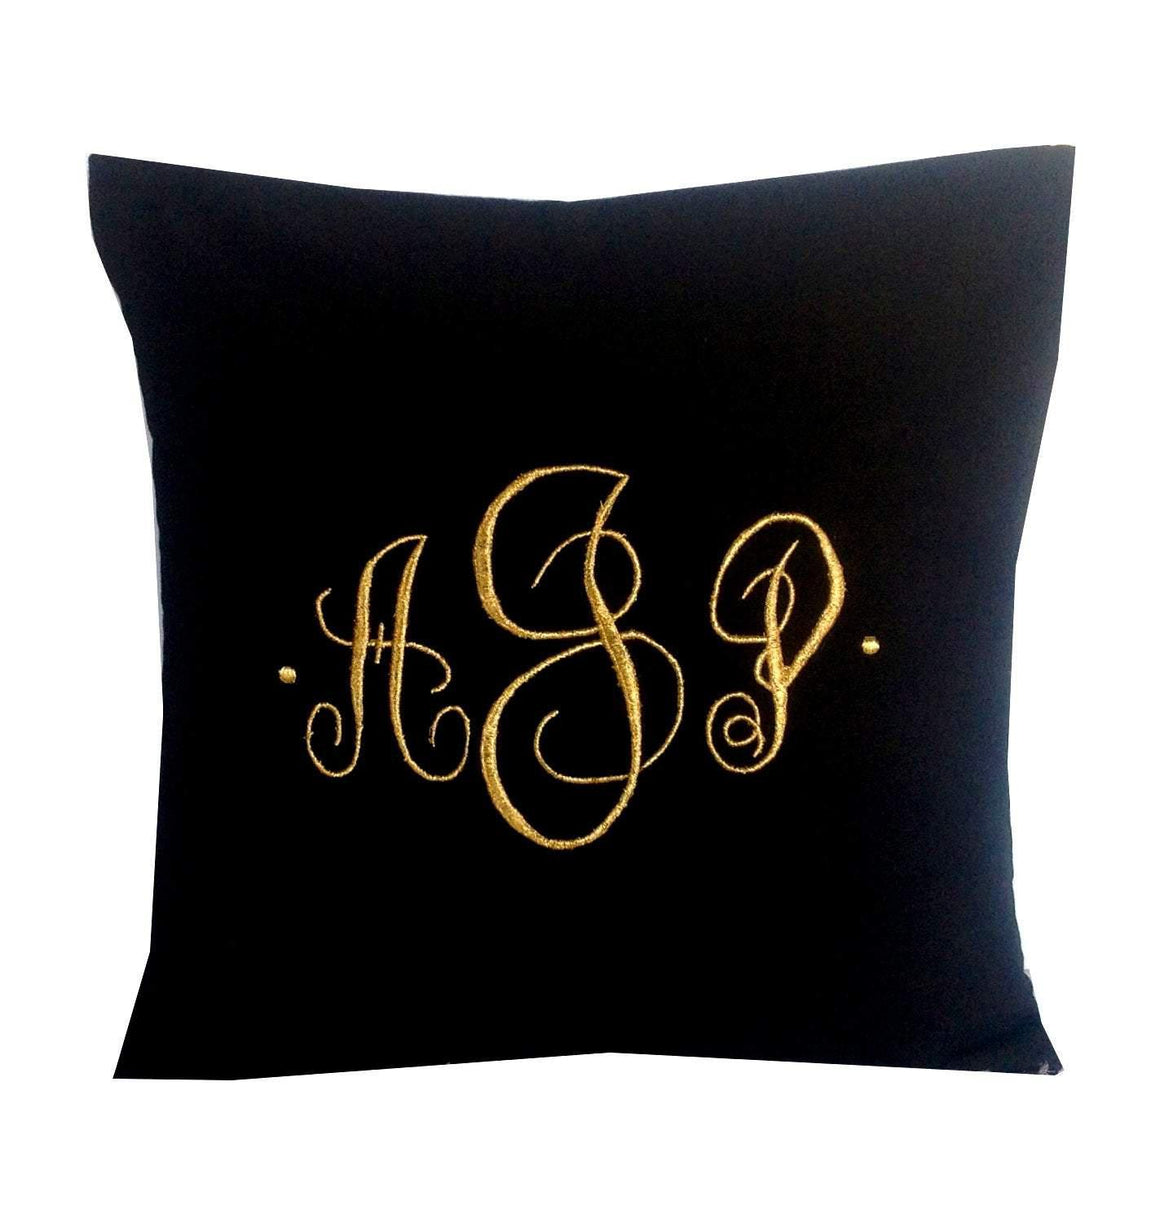 Monogram Pillows, Gold Embroidered Metallic Pillows, Gifts, Gold Pillows, Metallic Monogram Pillow Covers - Snazzy Living